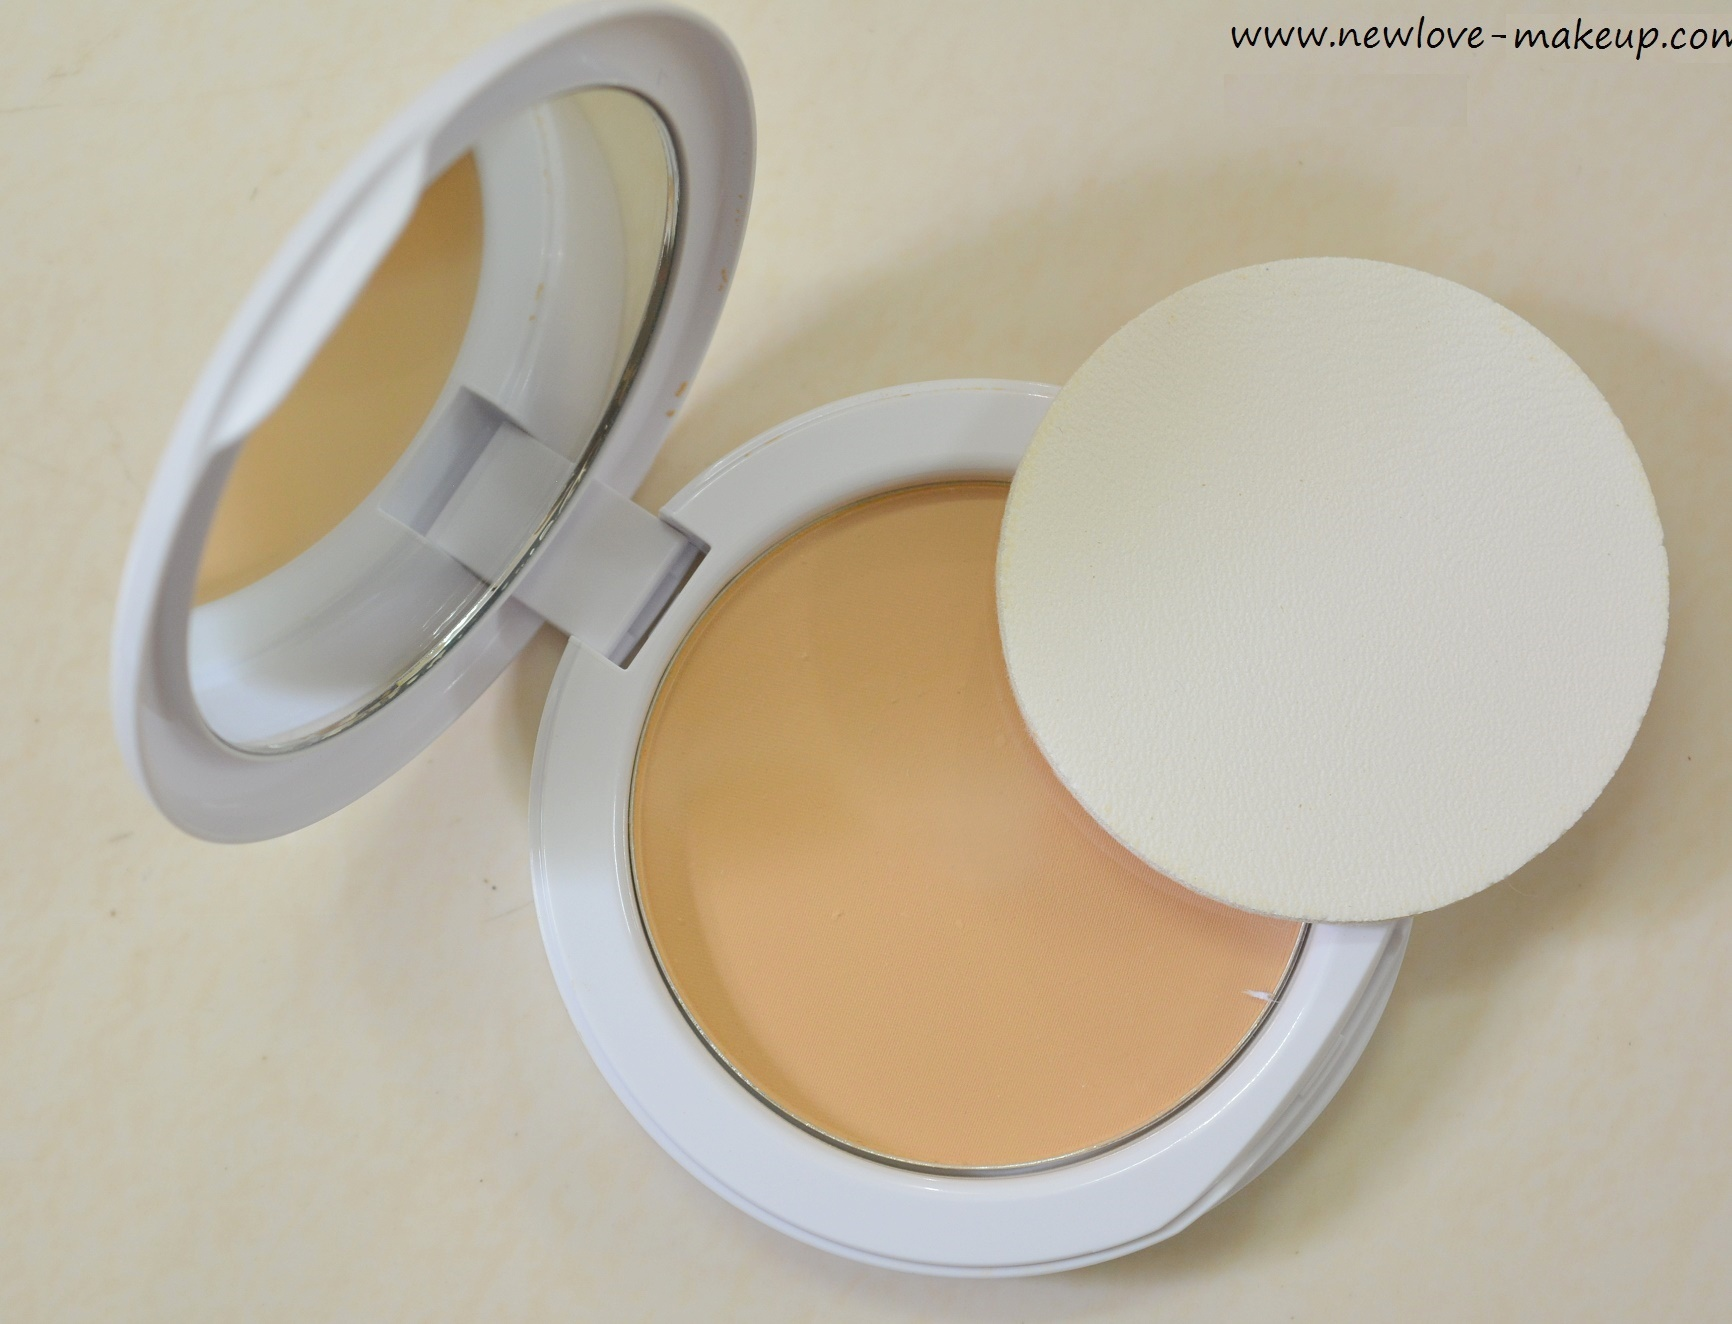 Maybelline White Super Fresh Compact Powder Shell Review, FOTD ...